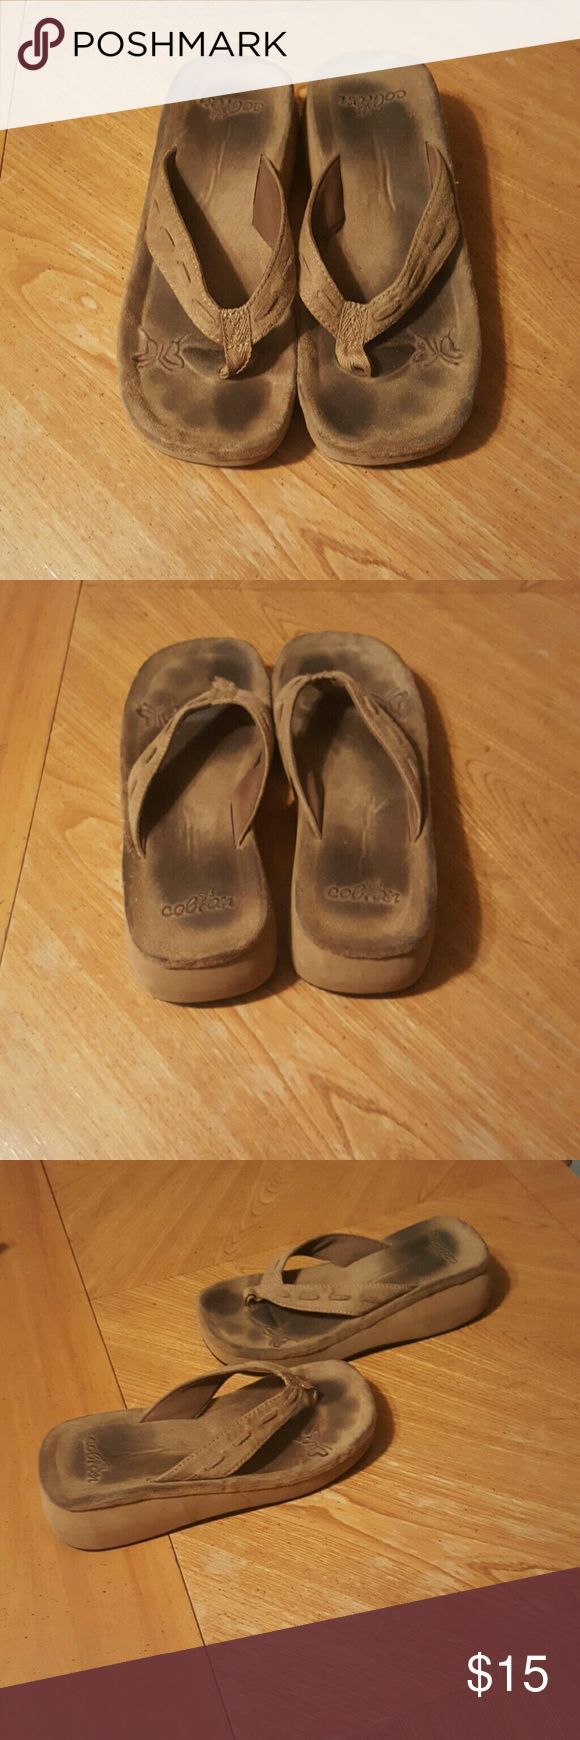 Cobian flip flops Cobian flip flops. In good condition.  Leather upper. Still a lot of wear left in them. Colbian Shoes Sandals